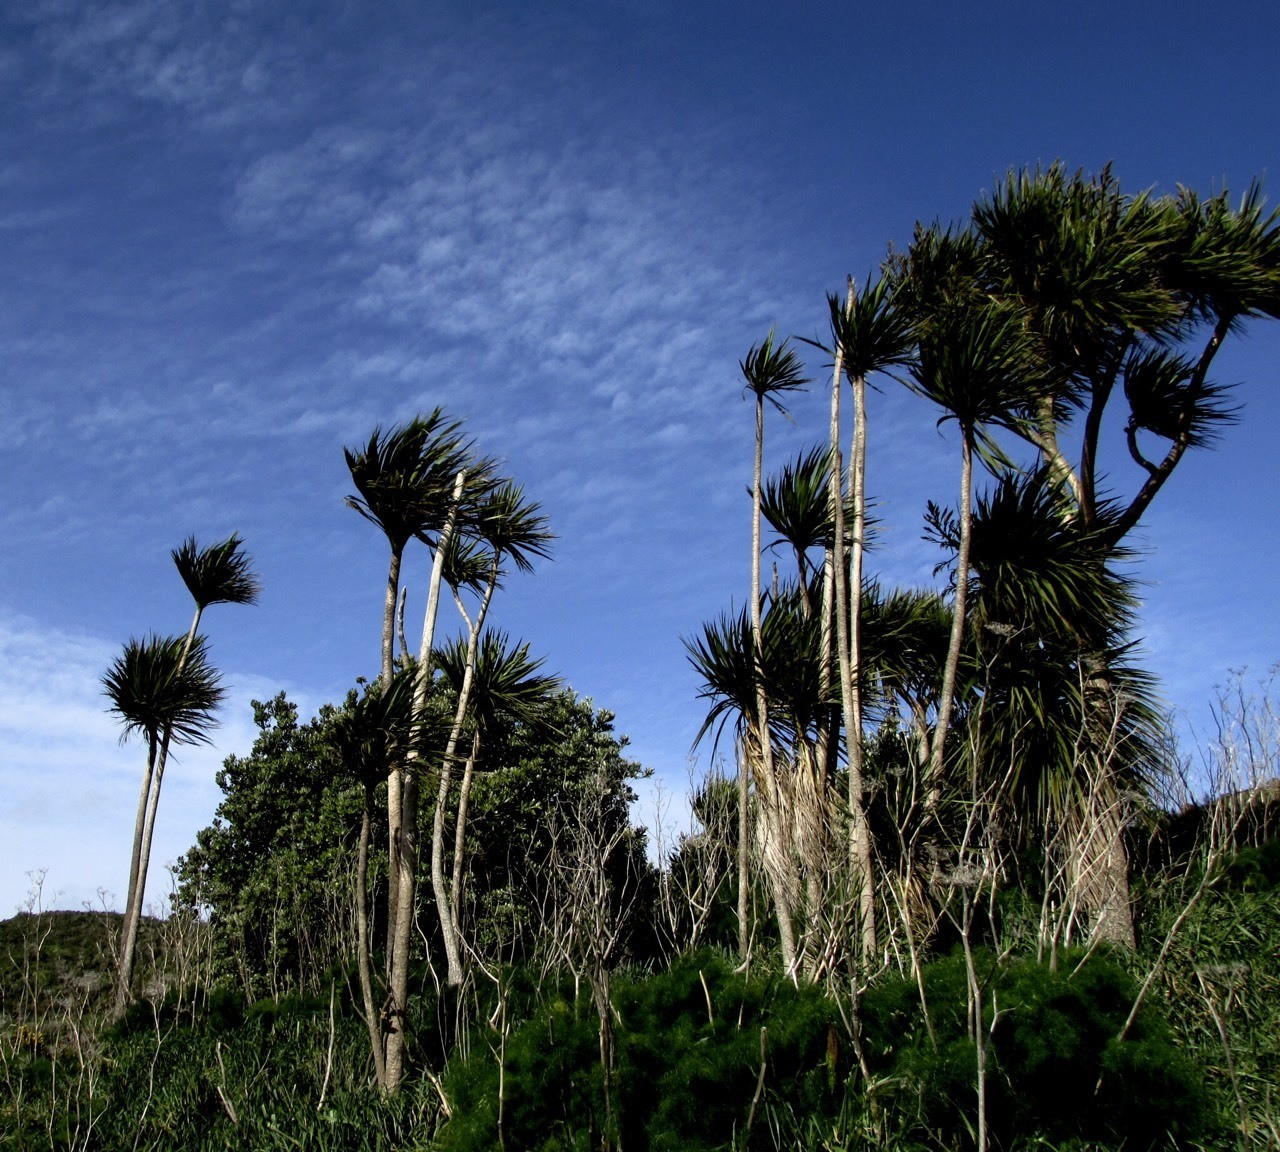 Northerly bluster, Cabbage trees bend atop one of Wellington's hills in a strong north wind